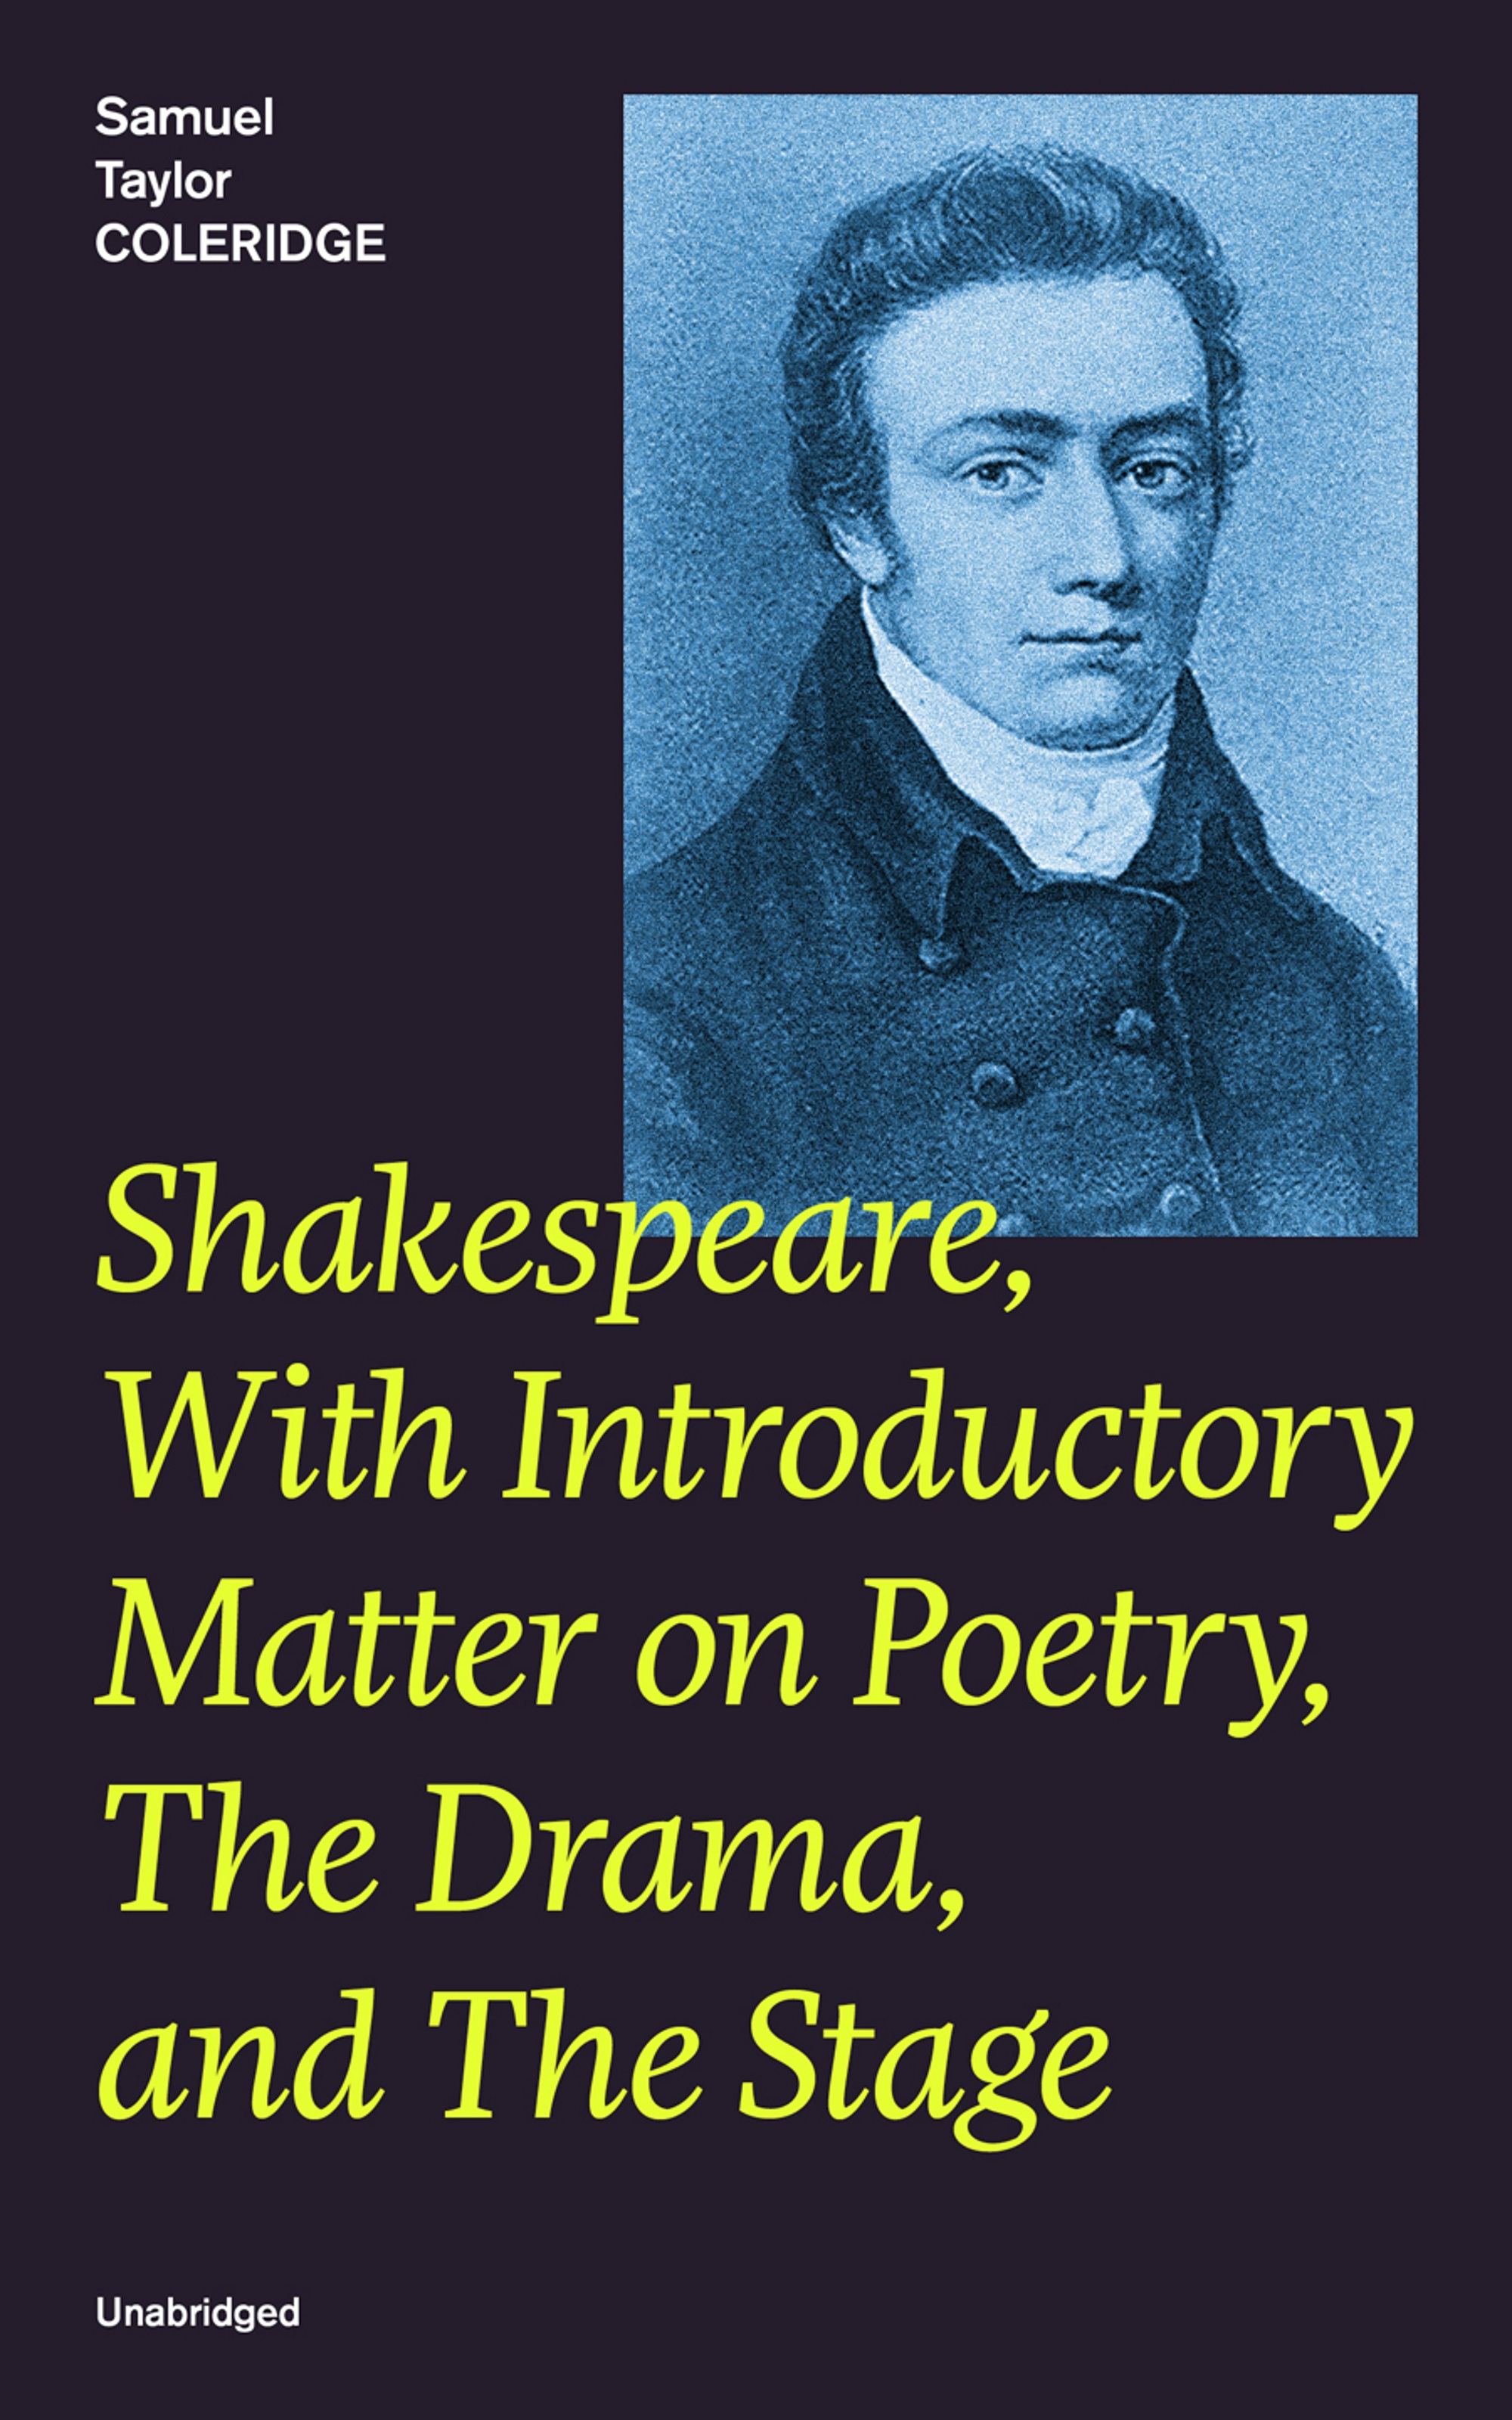 Samuel Taylor Coleridge Shakespeare, With Introductory Matter on Poetry, The Drama, and The Stage (Unabridged) reading farewell gifts in early modern poetry and drama